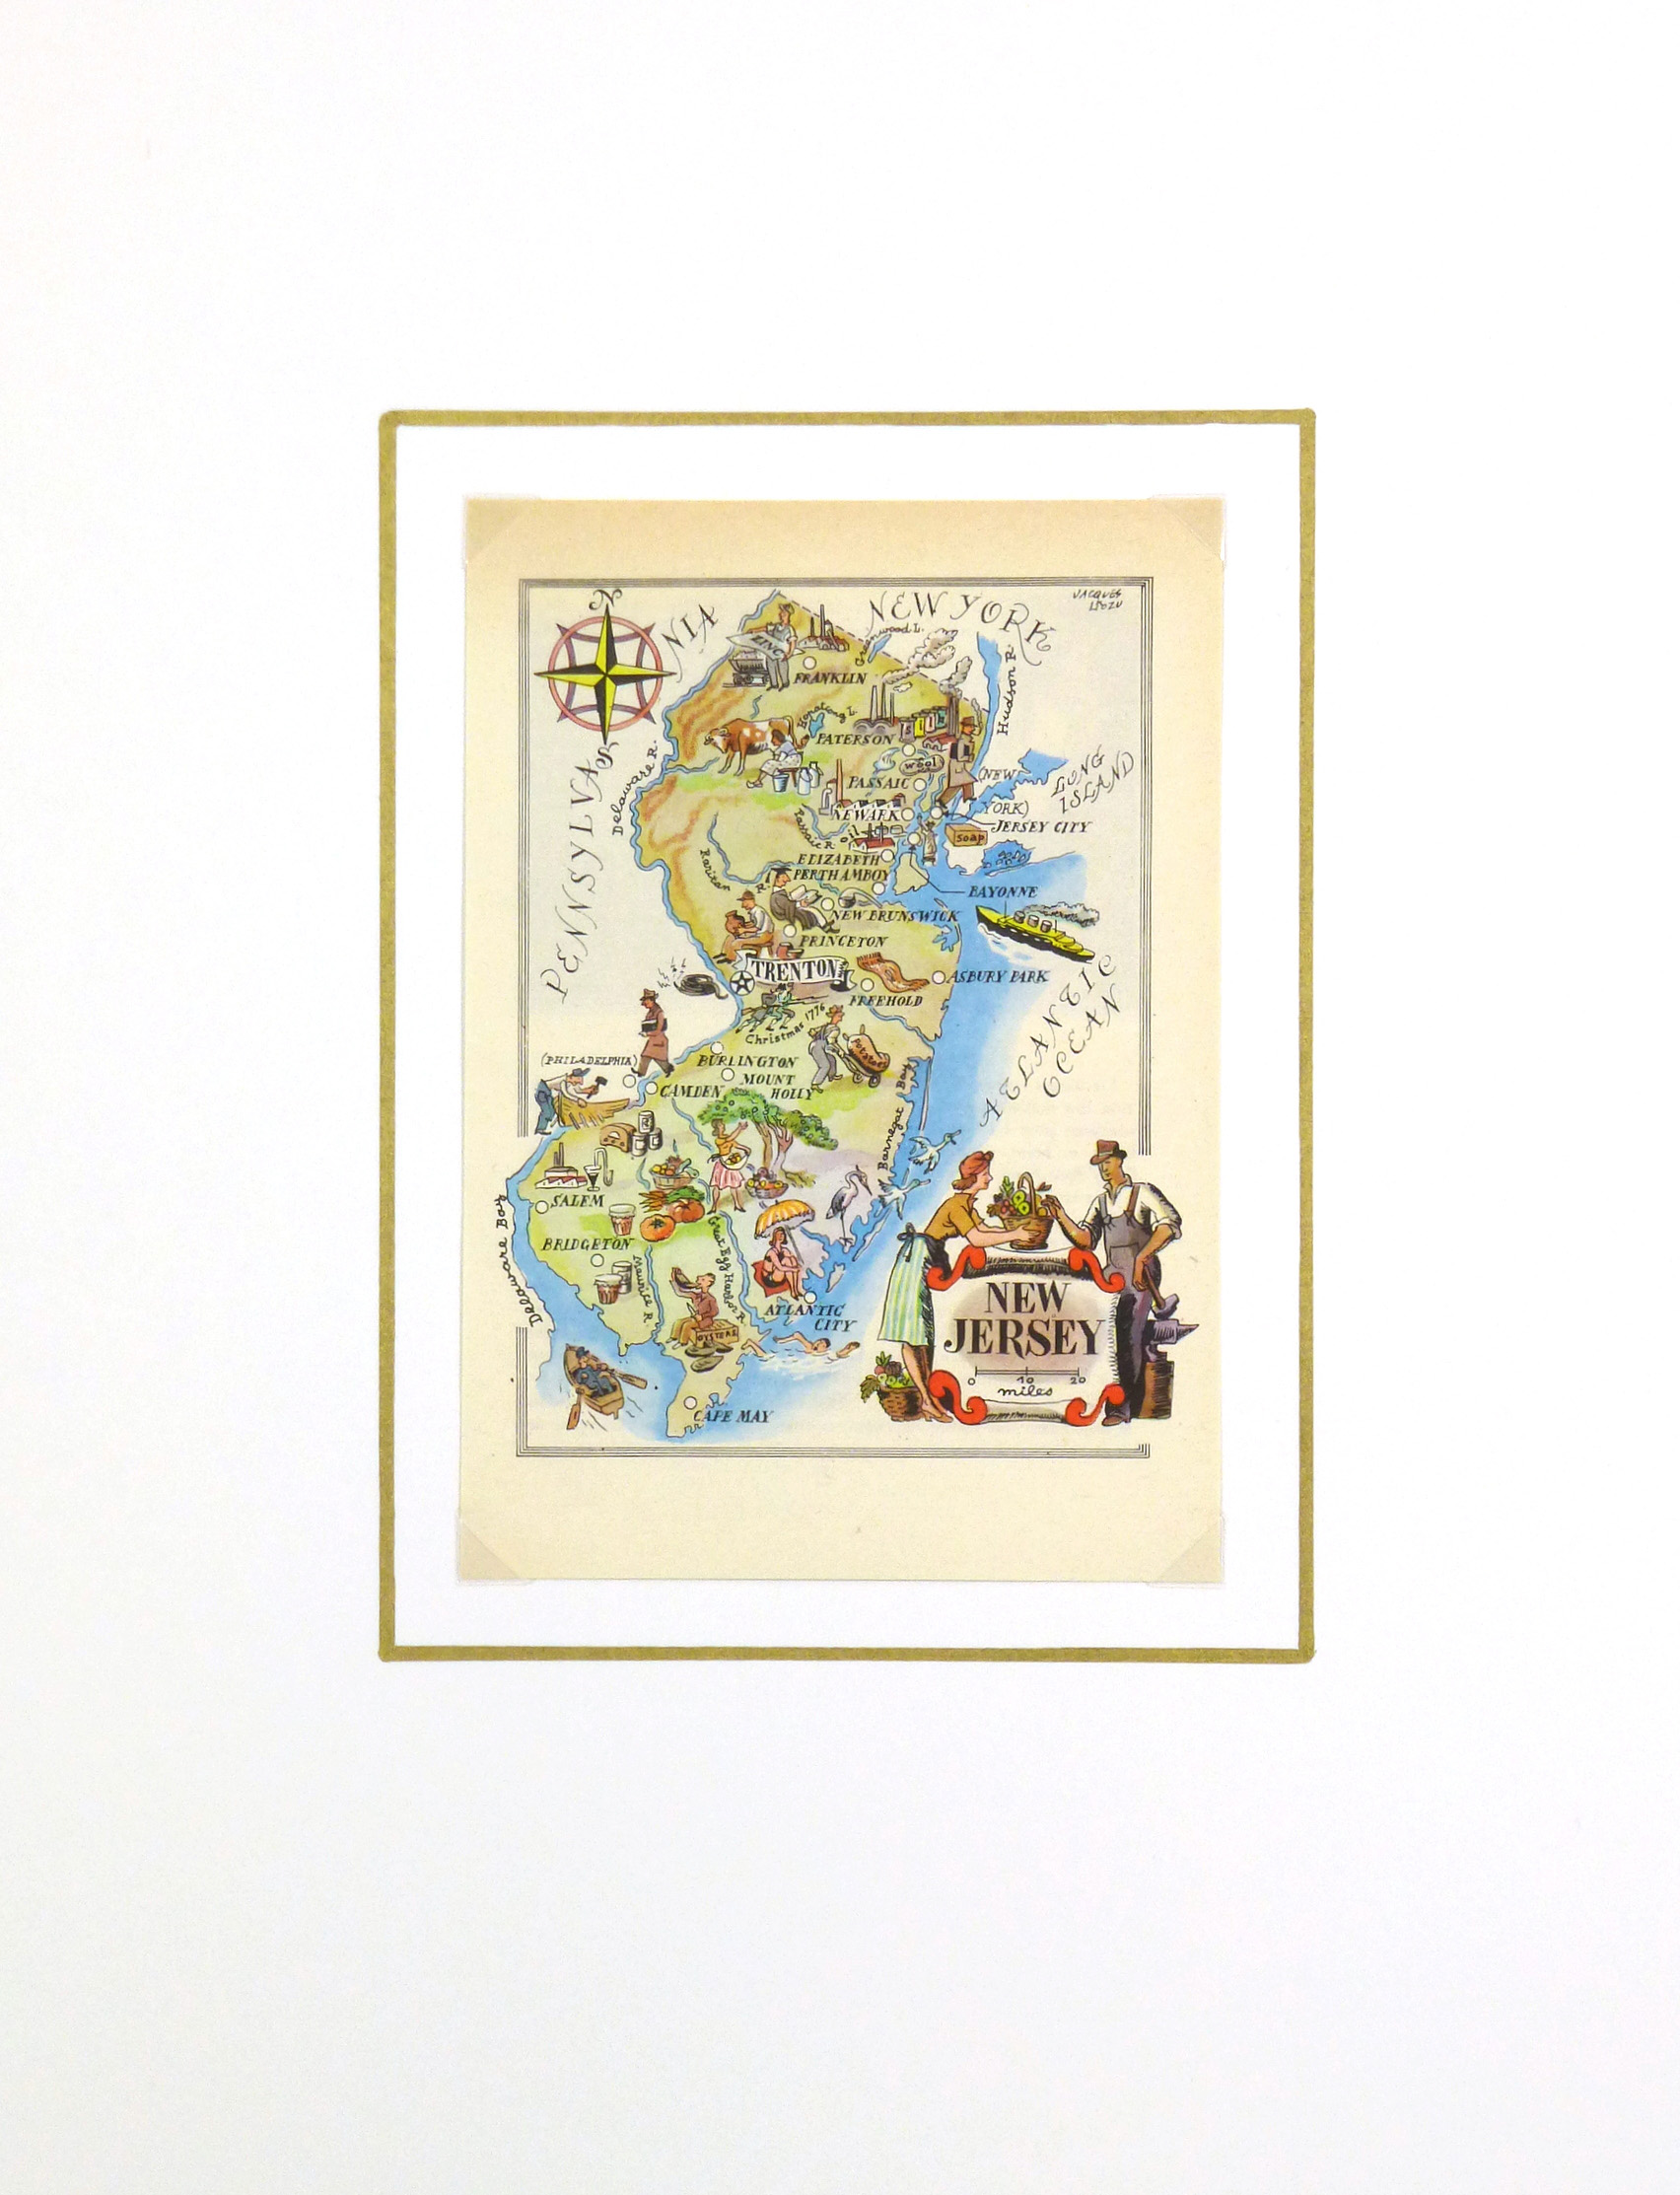 New Jersey Pictorial Map, 1946-matted-6251K